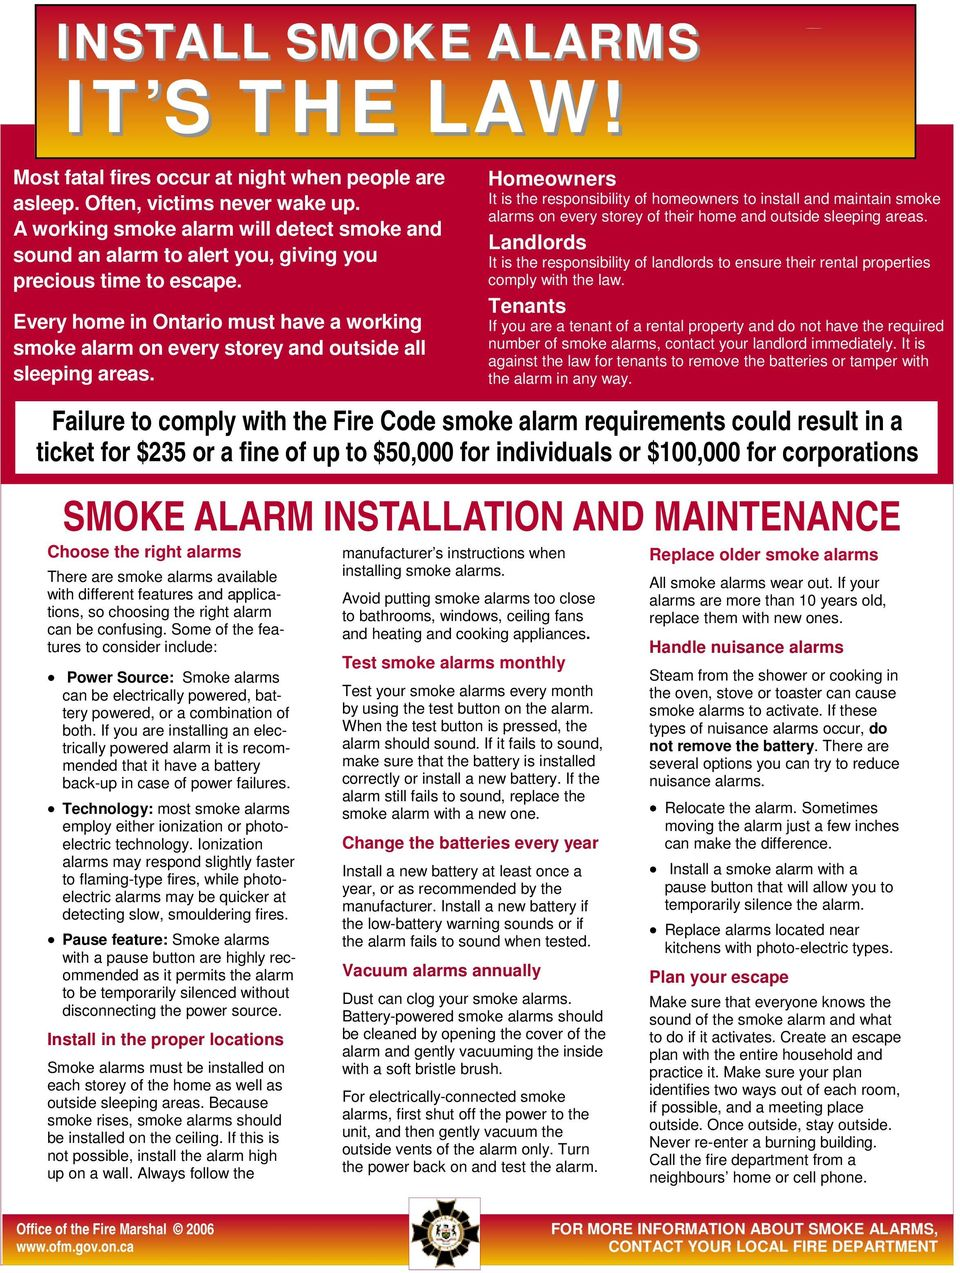 Every home in Ontario must have a working smoke alarm on every storey and outside all sleeping areas.